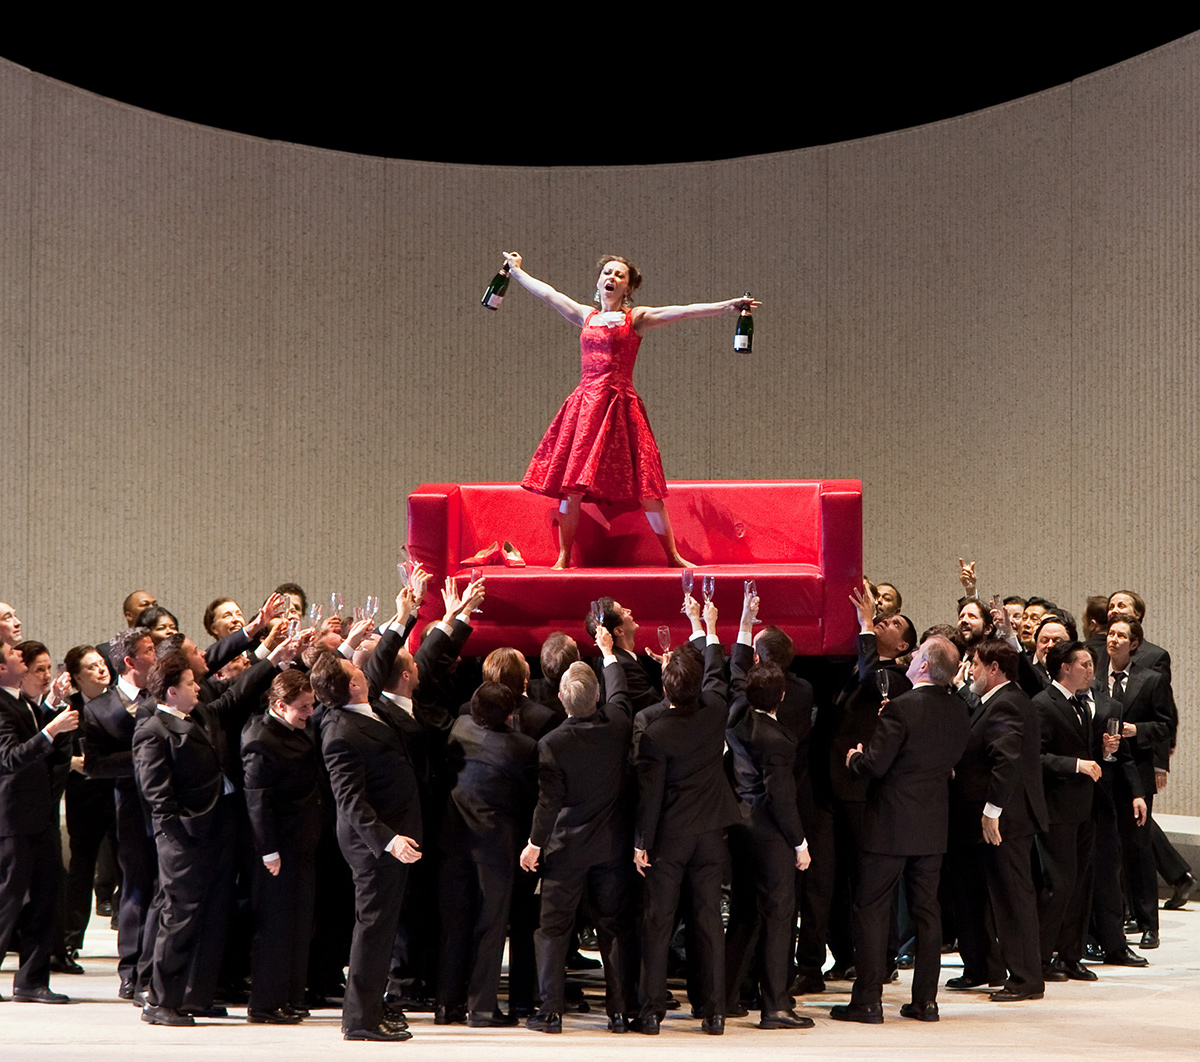 La Tazza e il Cantico: Pairing Wine With Opera